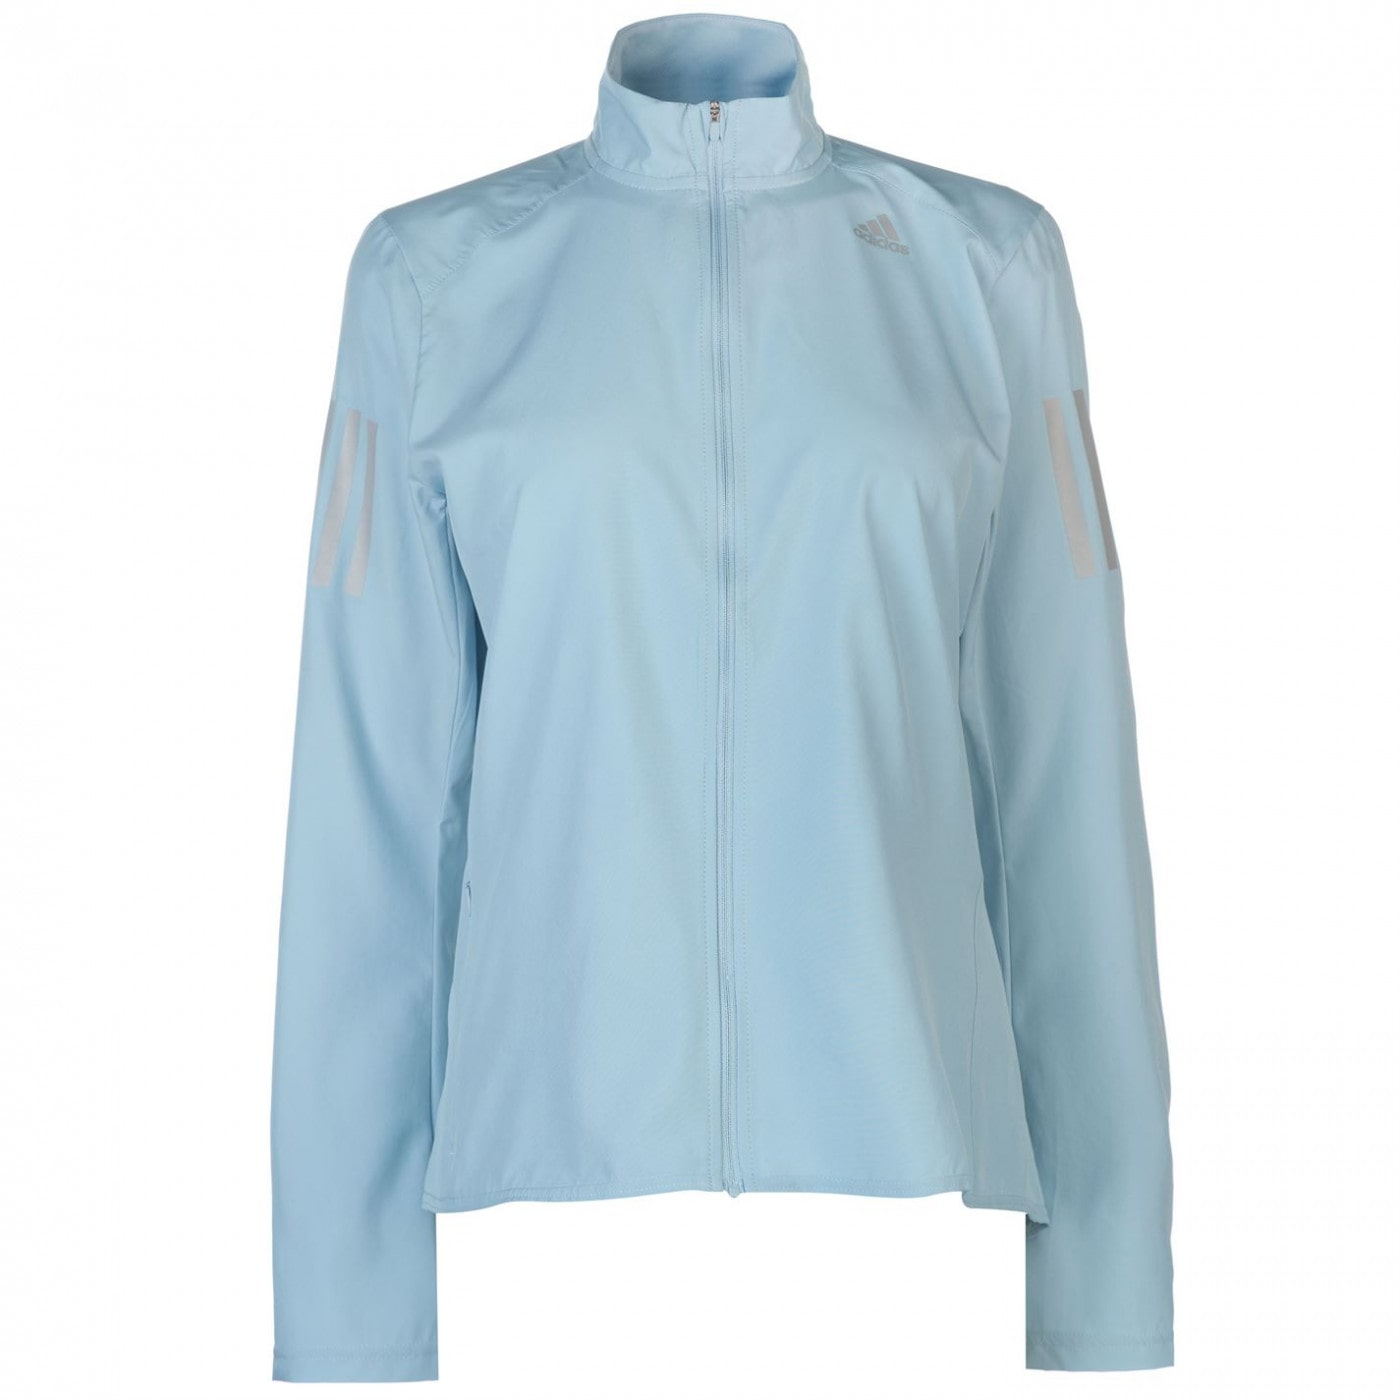 Adidas OTR Running Jacket Ladies